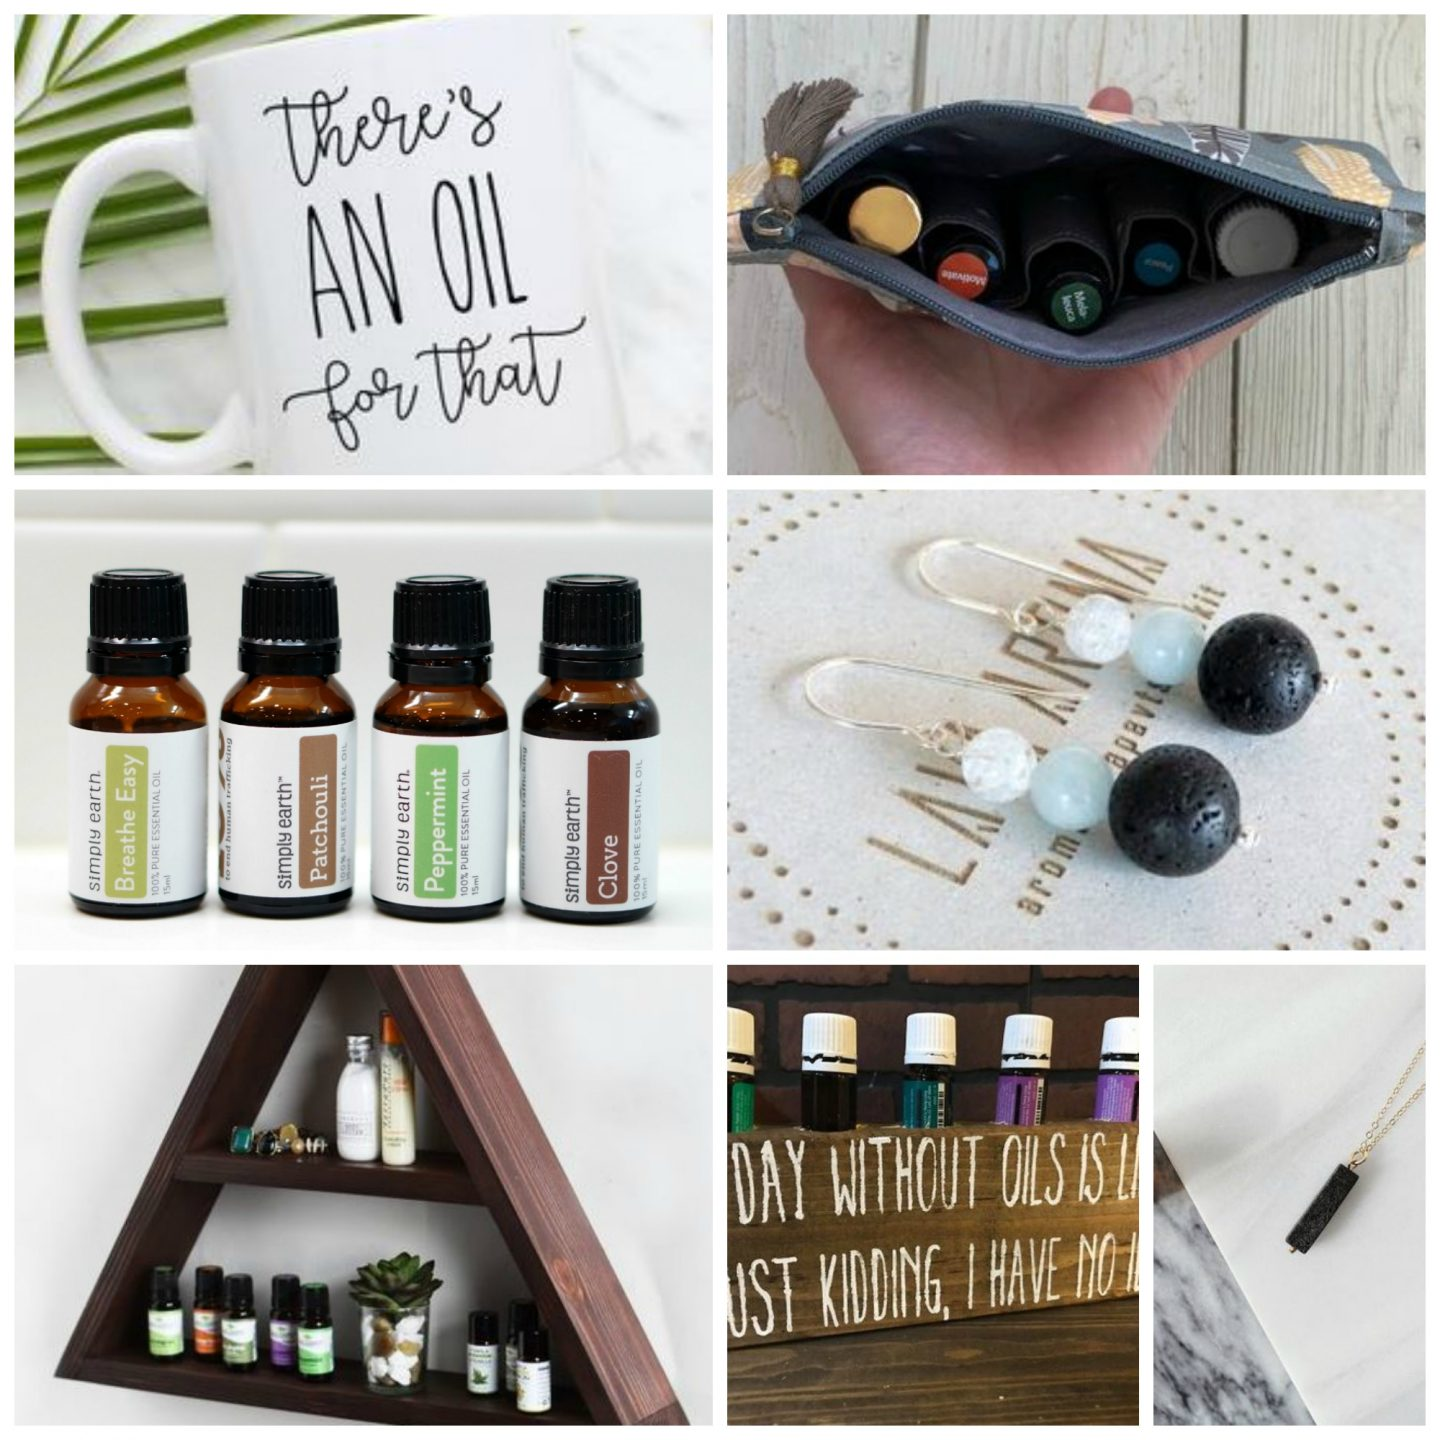 NC blogger Rebecca Lately shares her gift guide for the essential oil lover.  From a Simply Earth subscription to a case, there's a little bit of everything!